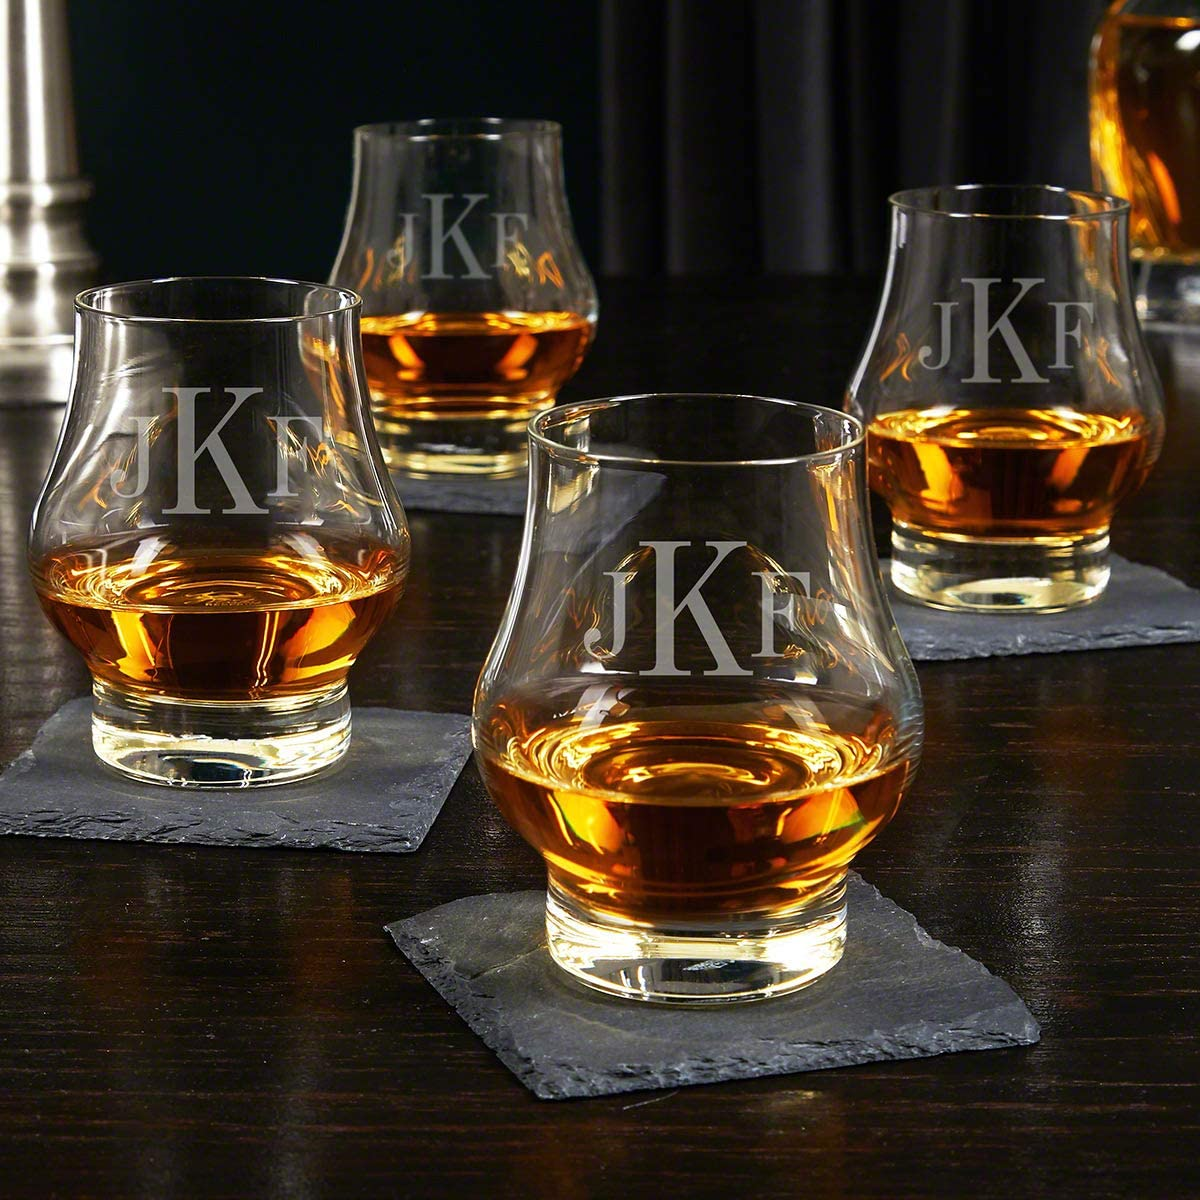 Classic Monogram Custom Wescott Double Snifter Whiskey Tasting Glasses Set of 4 (Personalized Product)